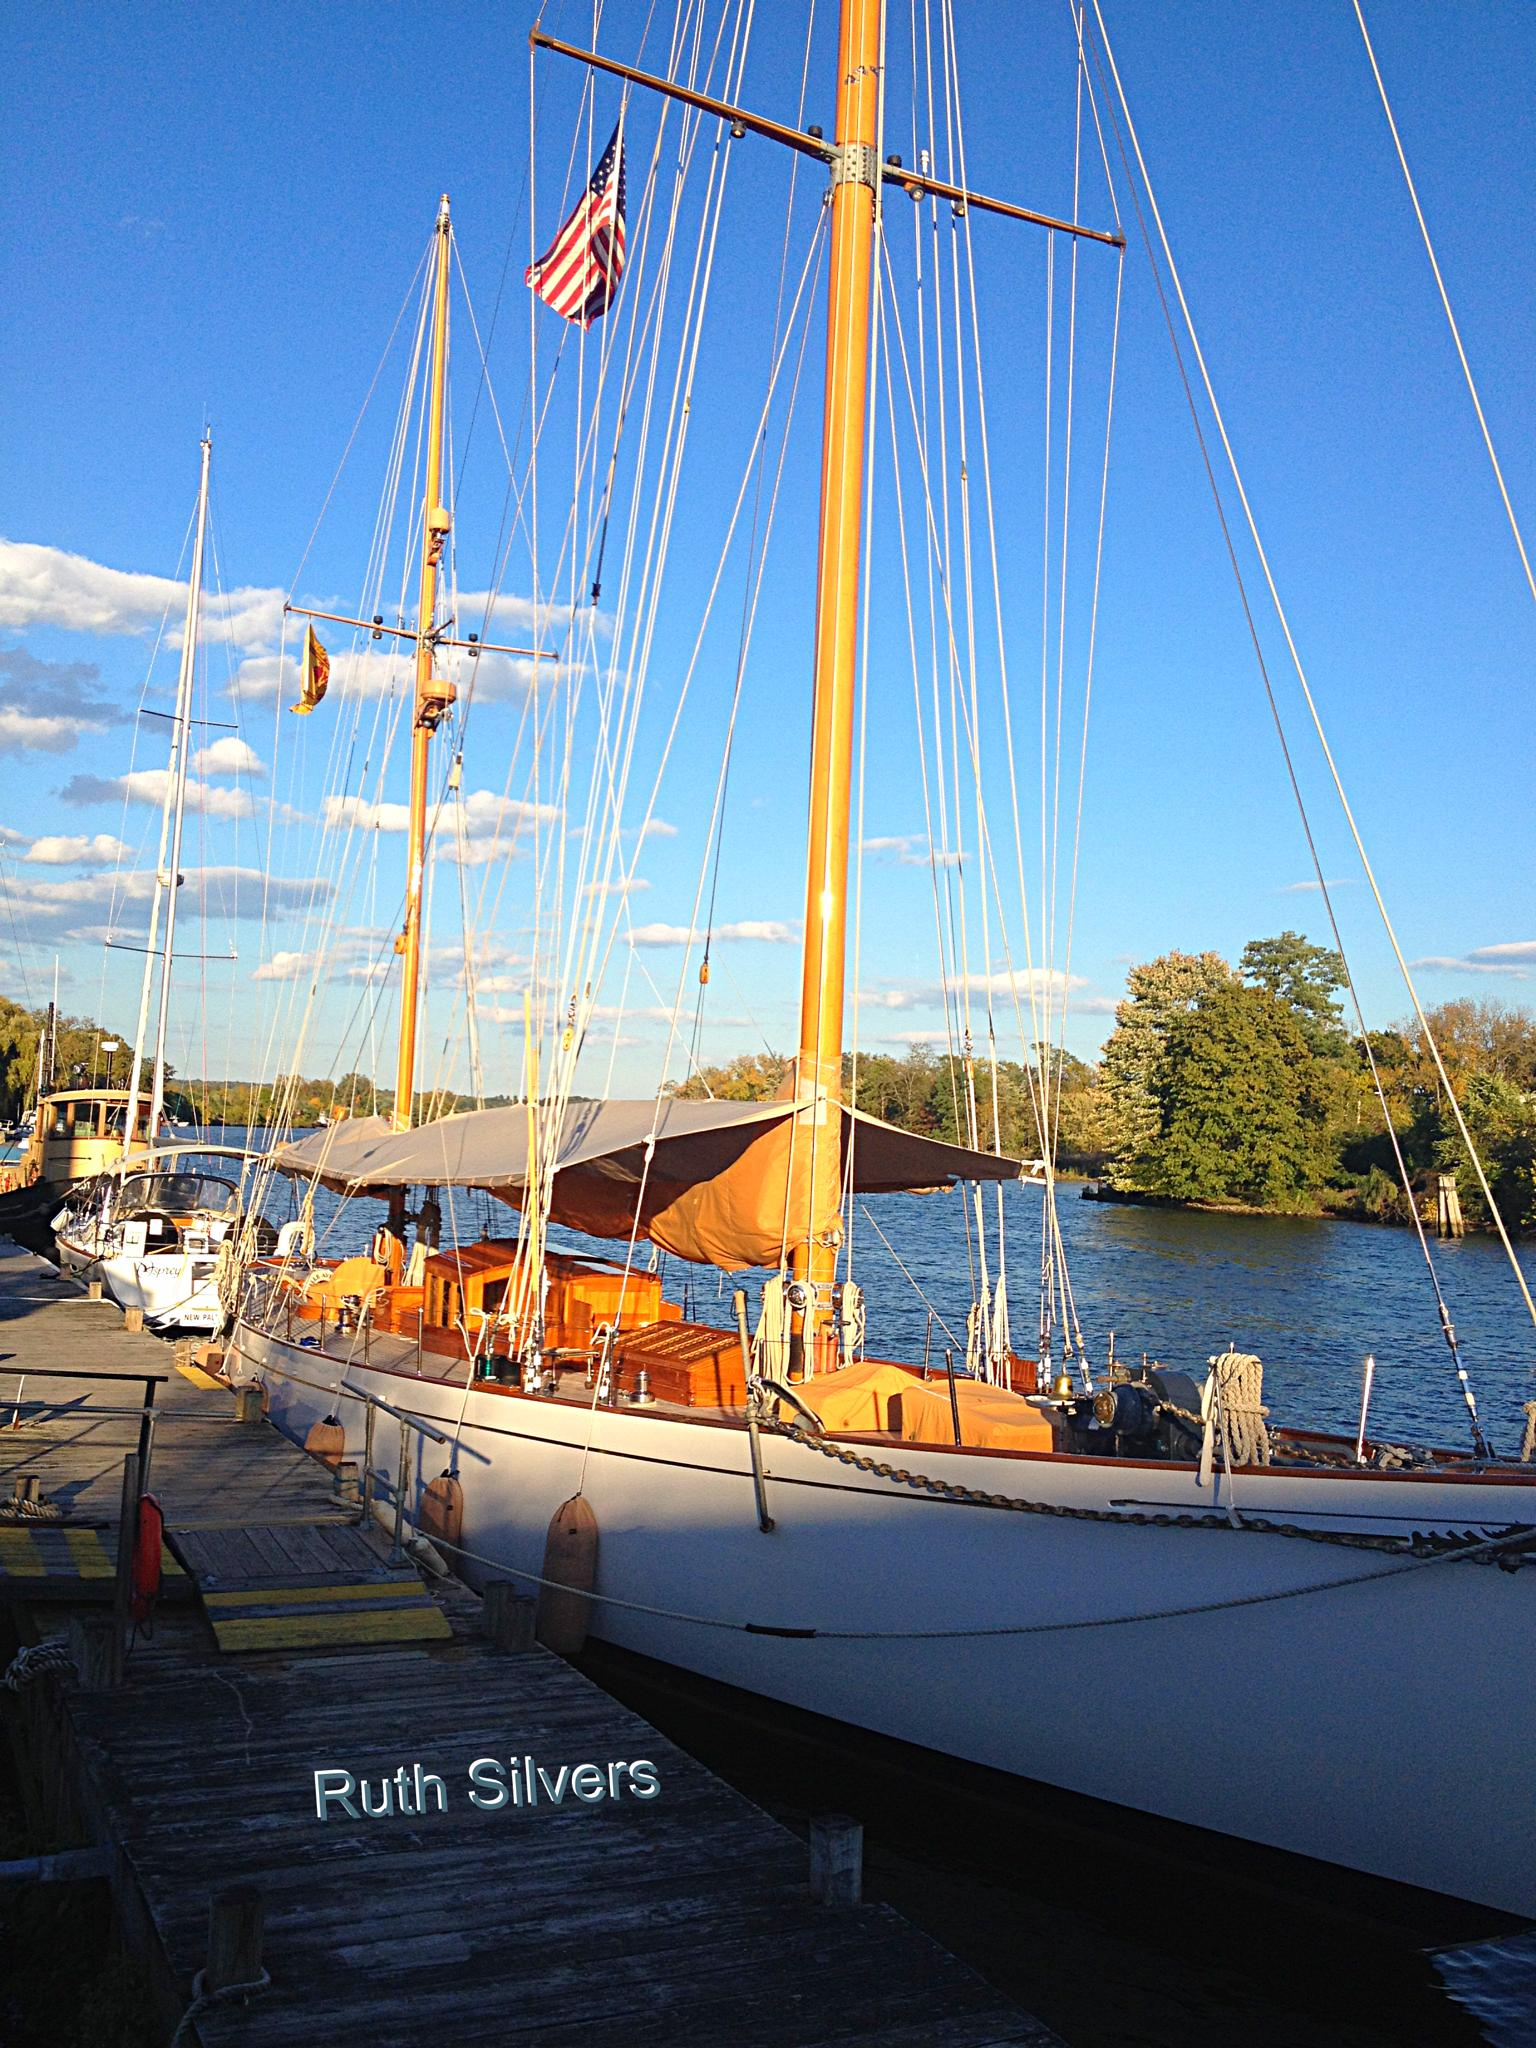 Sailboat on the docks by Ruth Silvers